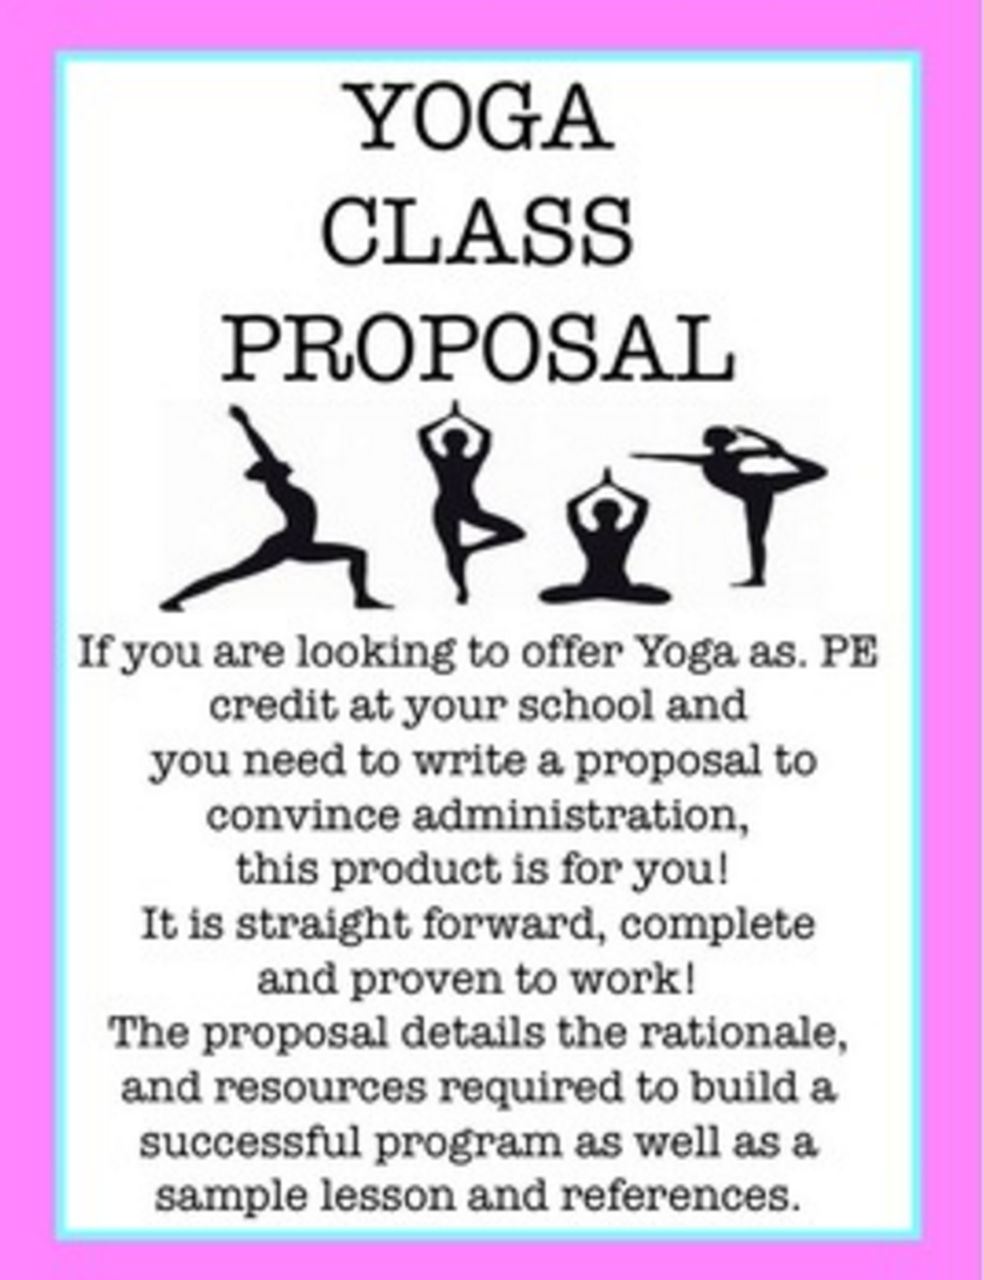 Proposal For Yoga Class for PE Credit  Proposal writing, Yoga